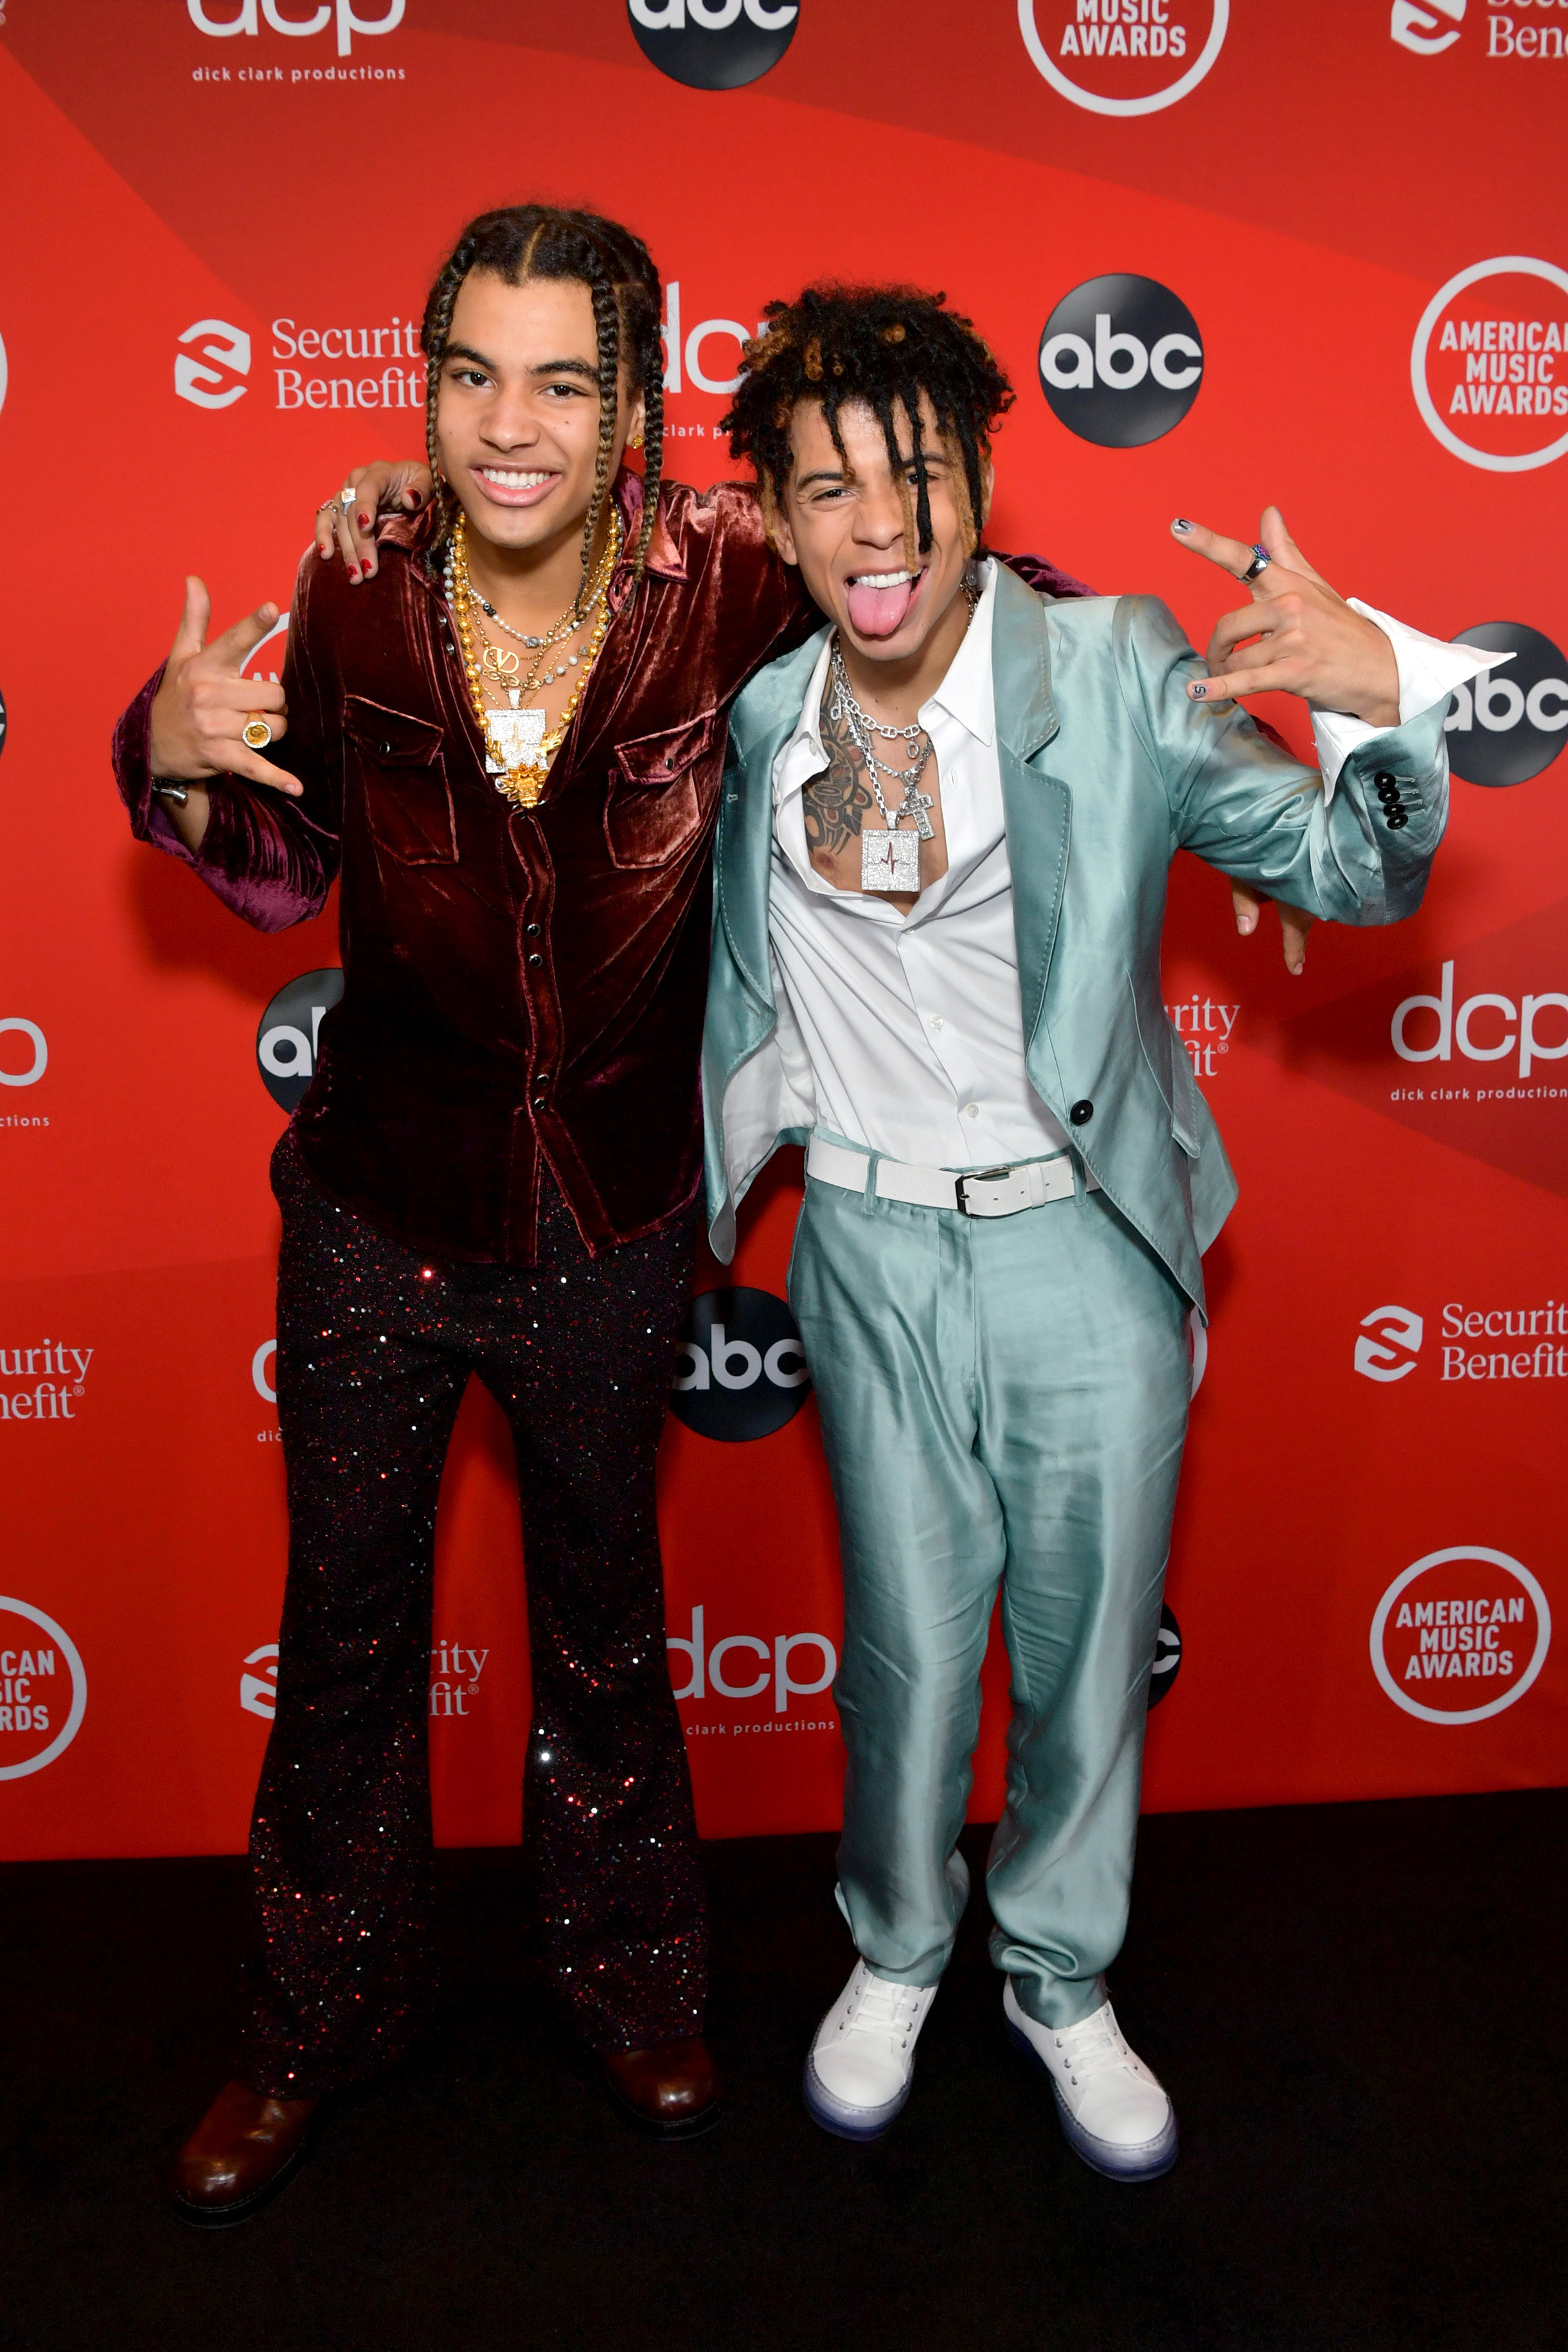 24kGoldn and Iann Dior attend the 2020 American Music Awards